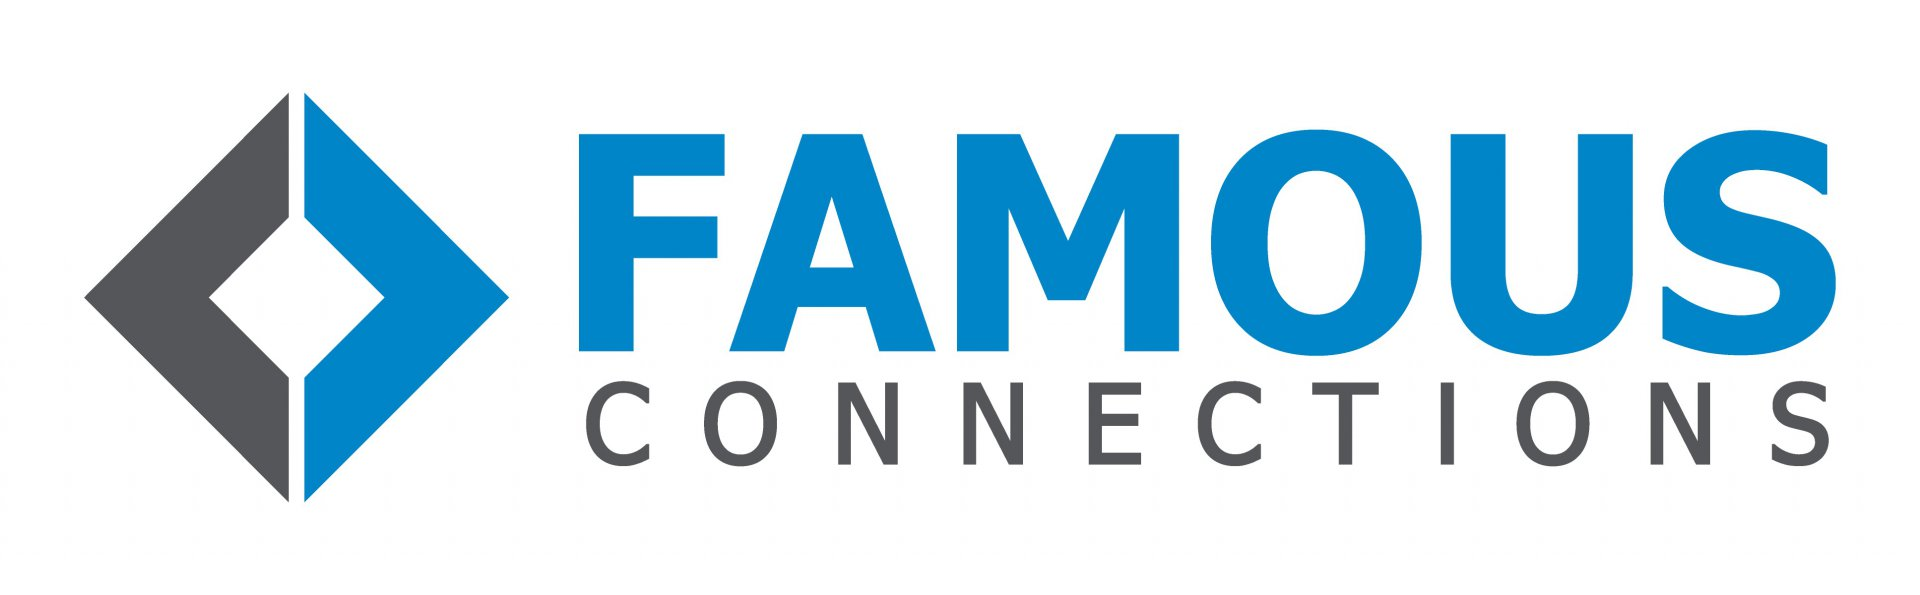 Famous Connections logo